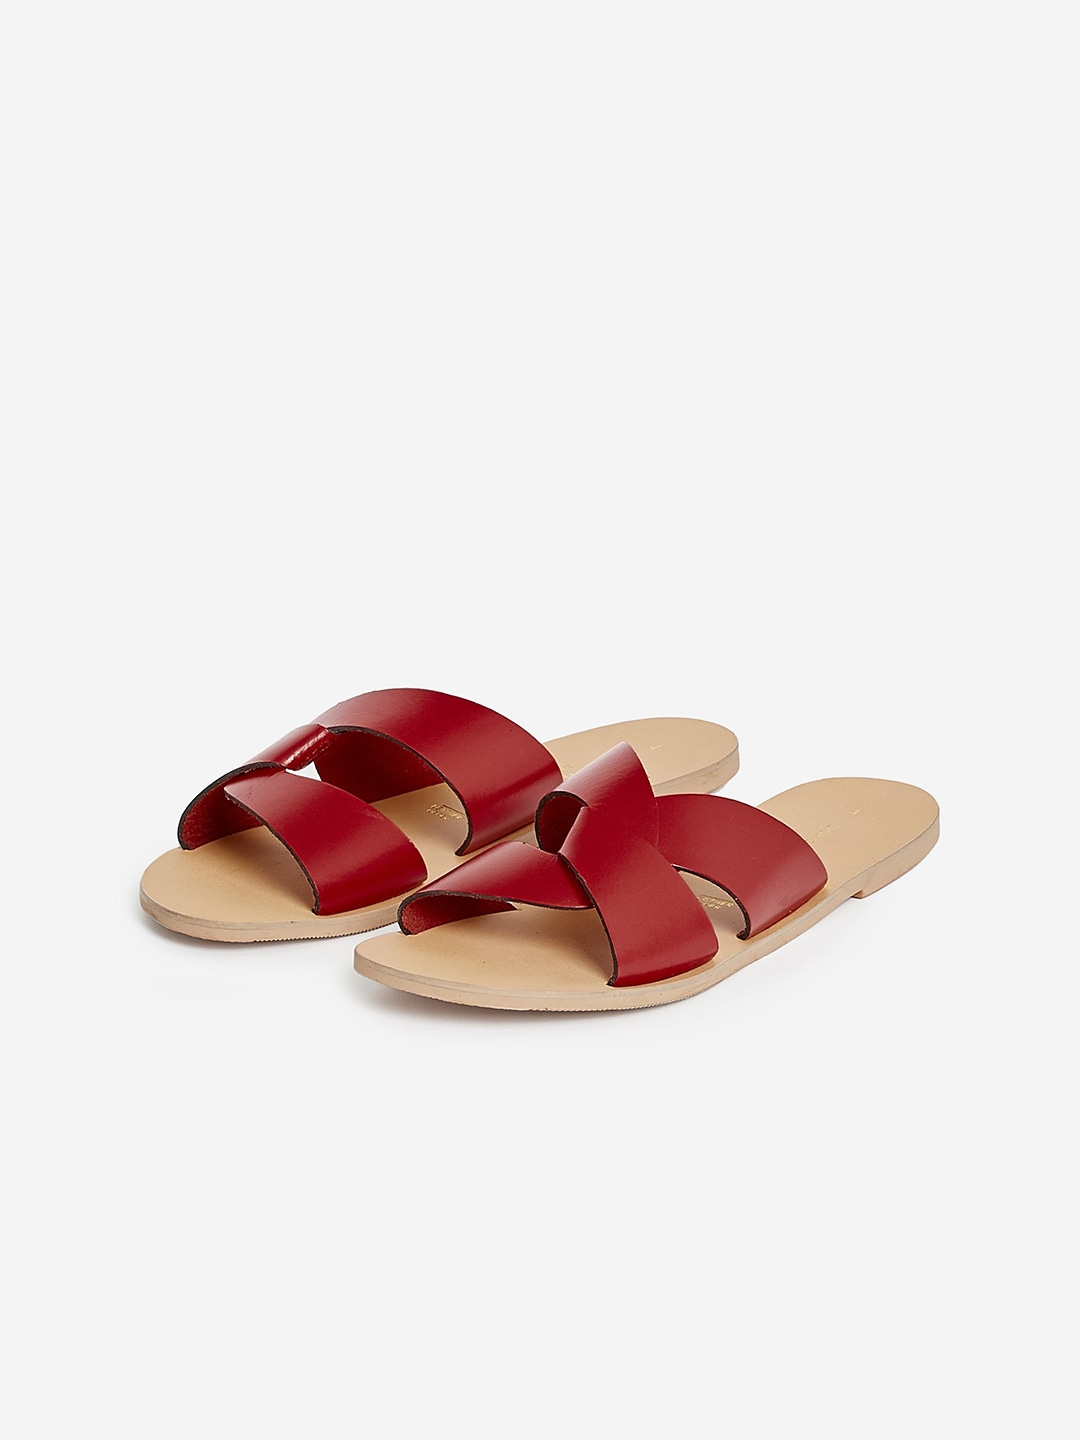 Maroon Solid Leather Open Toe Flats